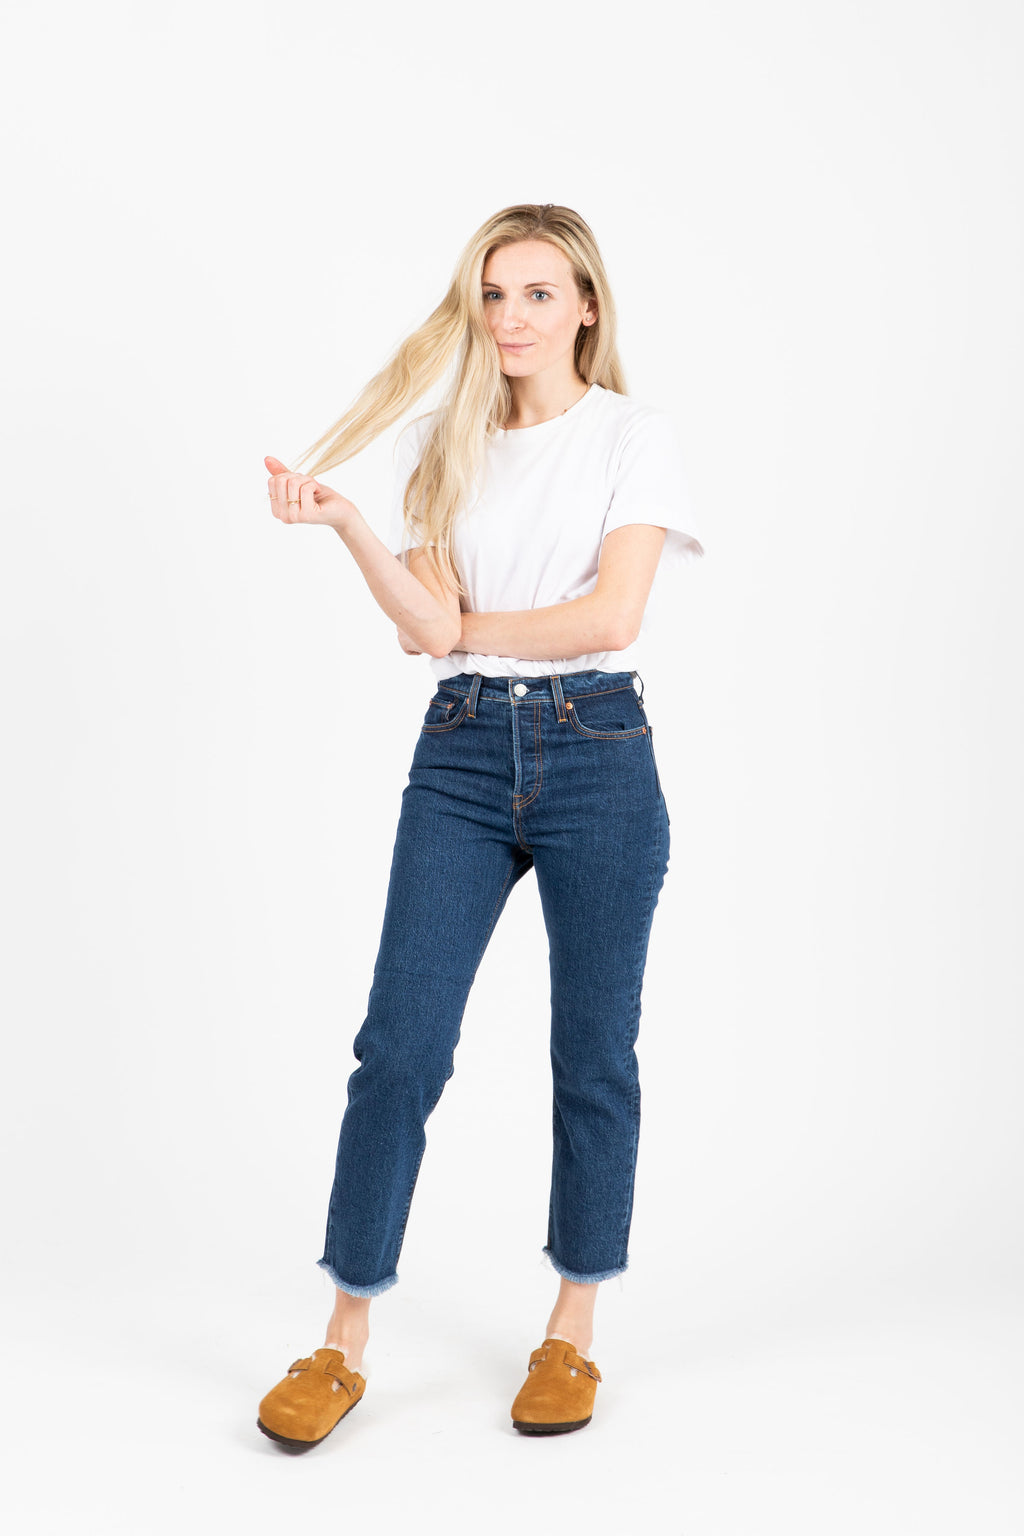 Levi's: Wedgie Straight Jeans in Below the Belt- studio shoot; front view